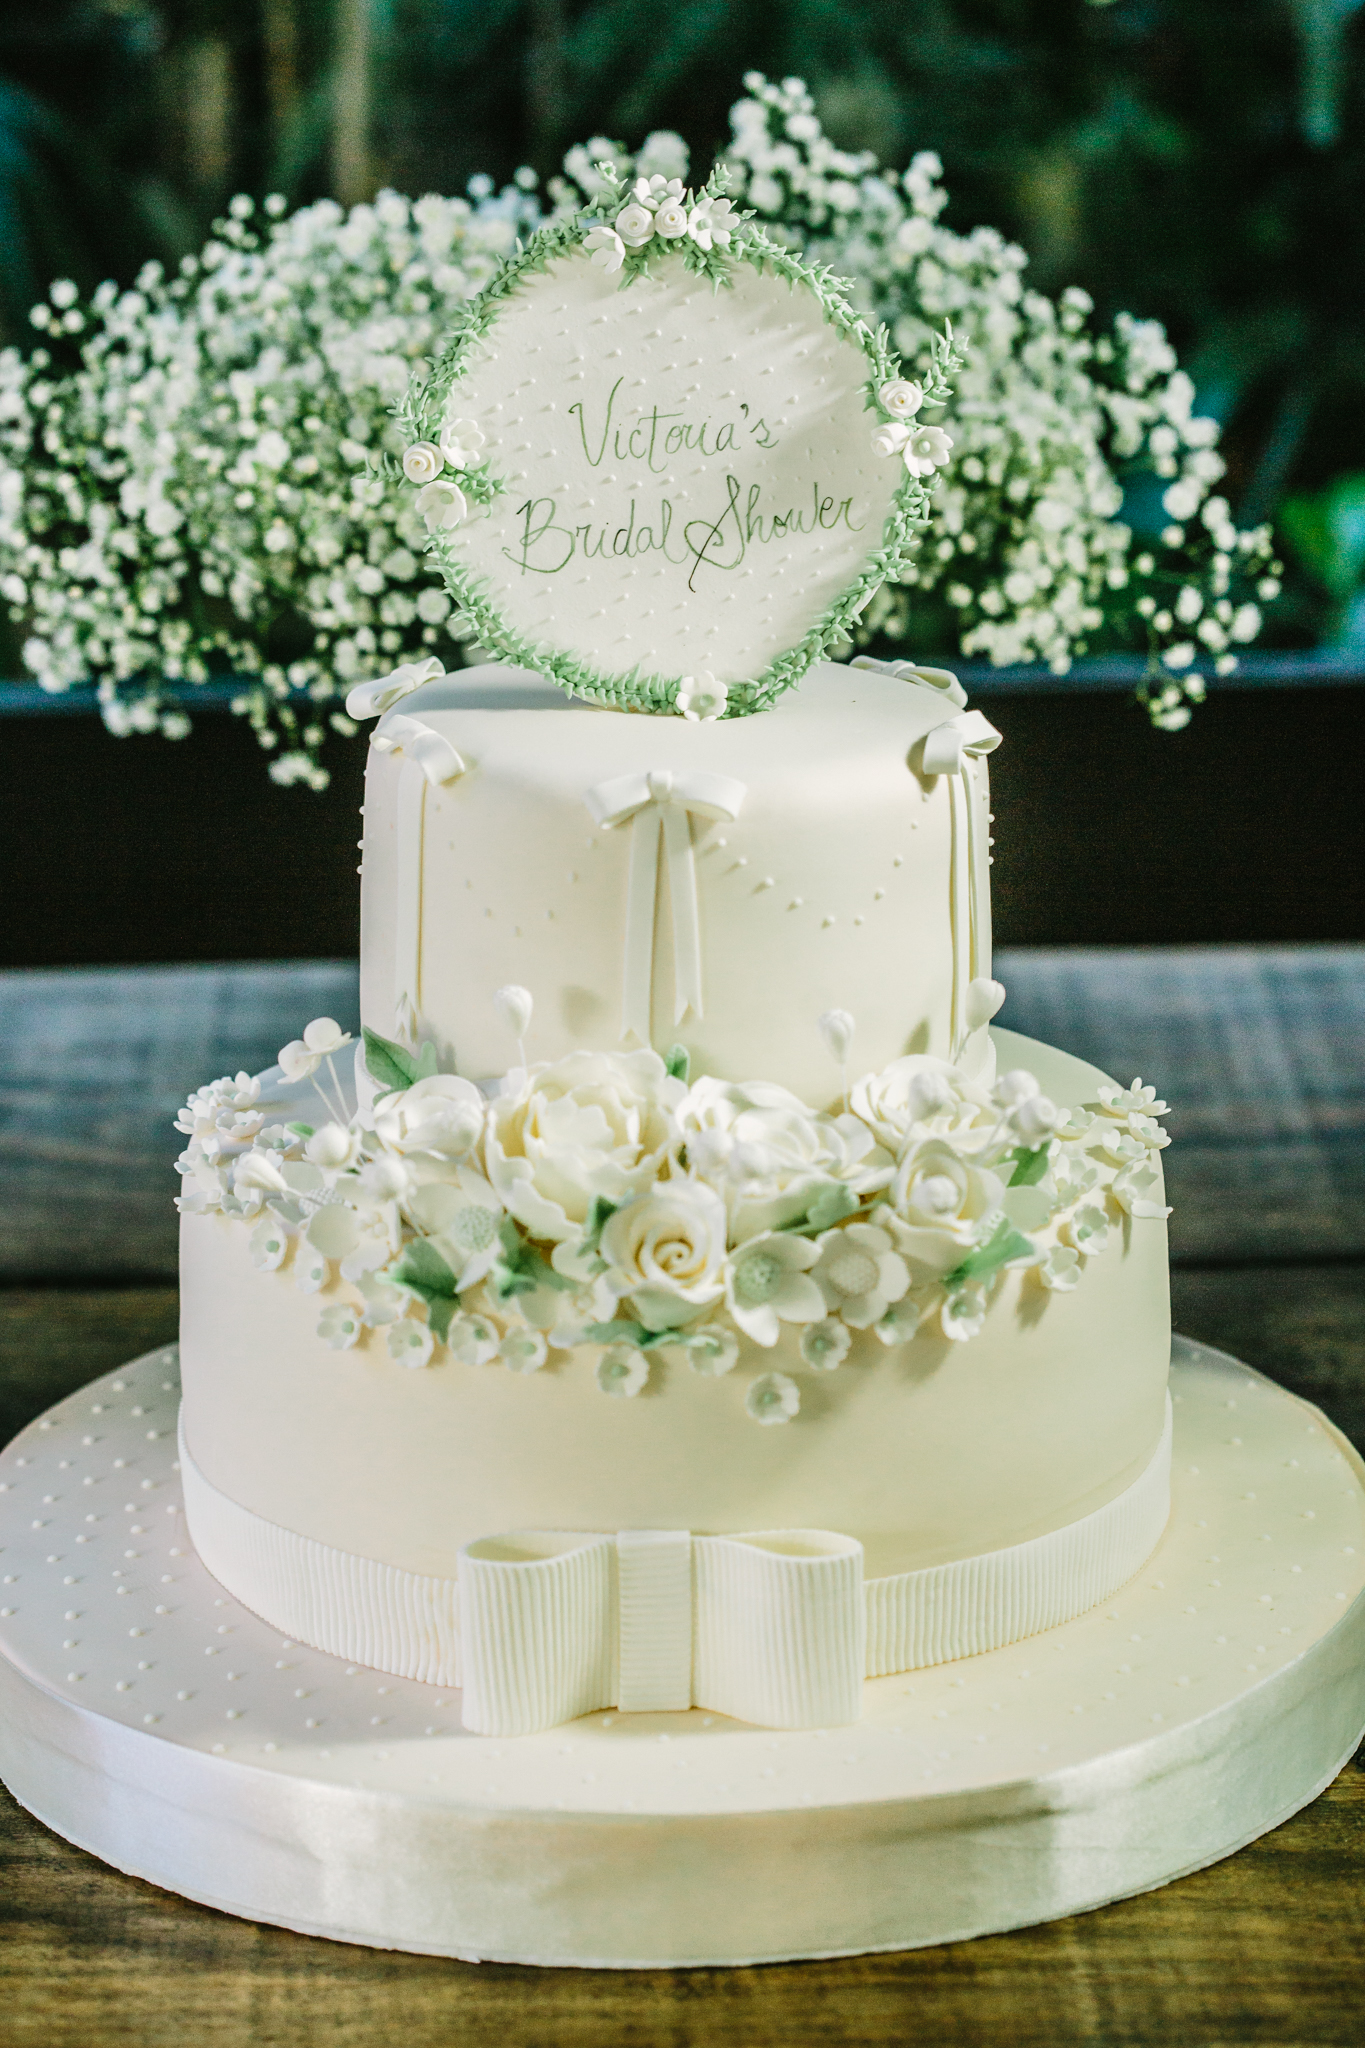 Rustic Chic Bridal Shower by Vie de Vic | Bridal Shower Cake | viedevic.com